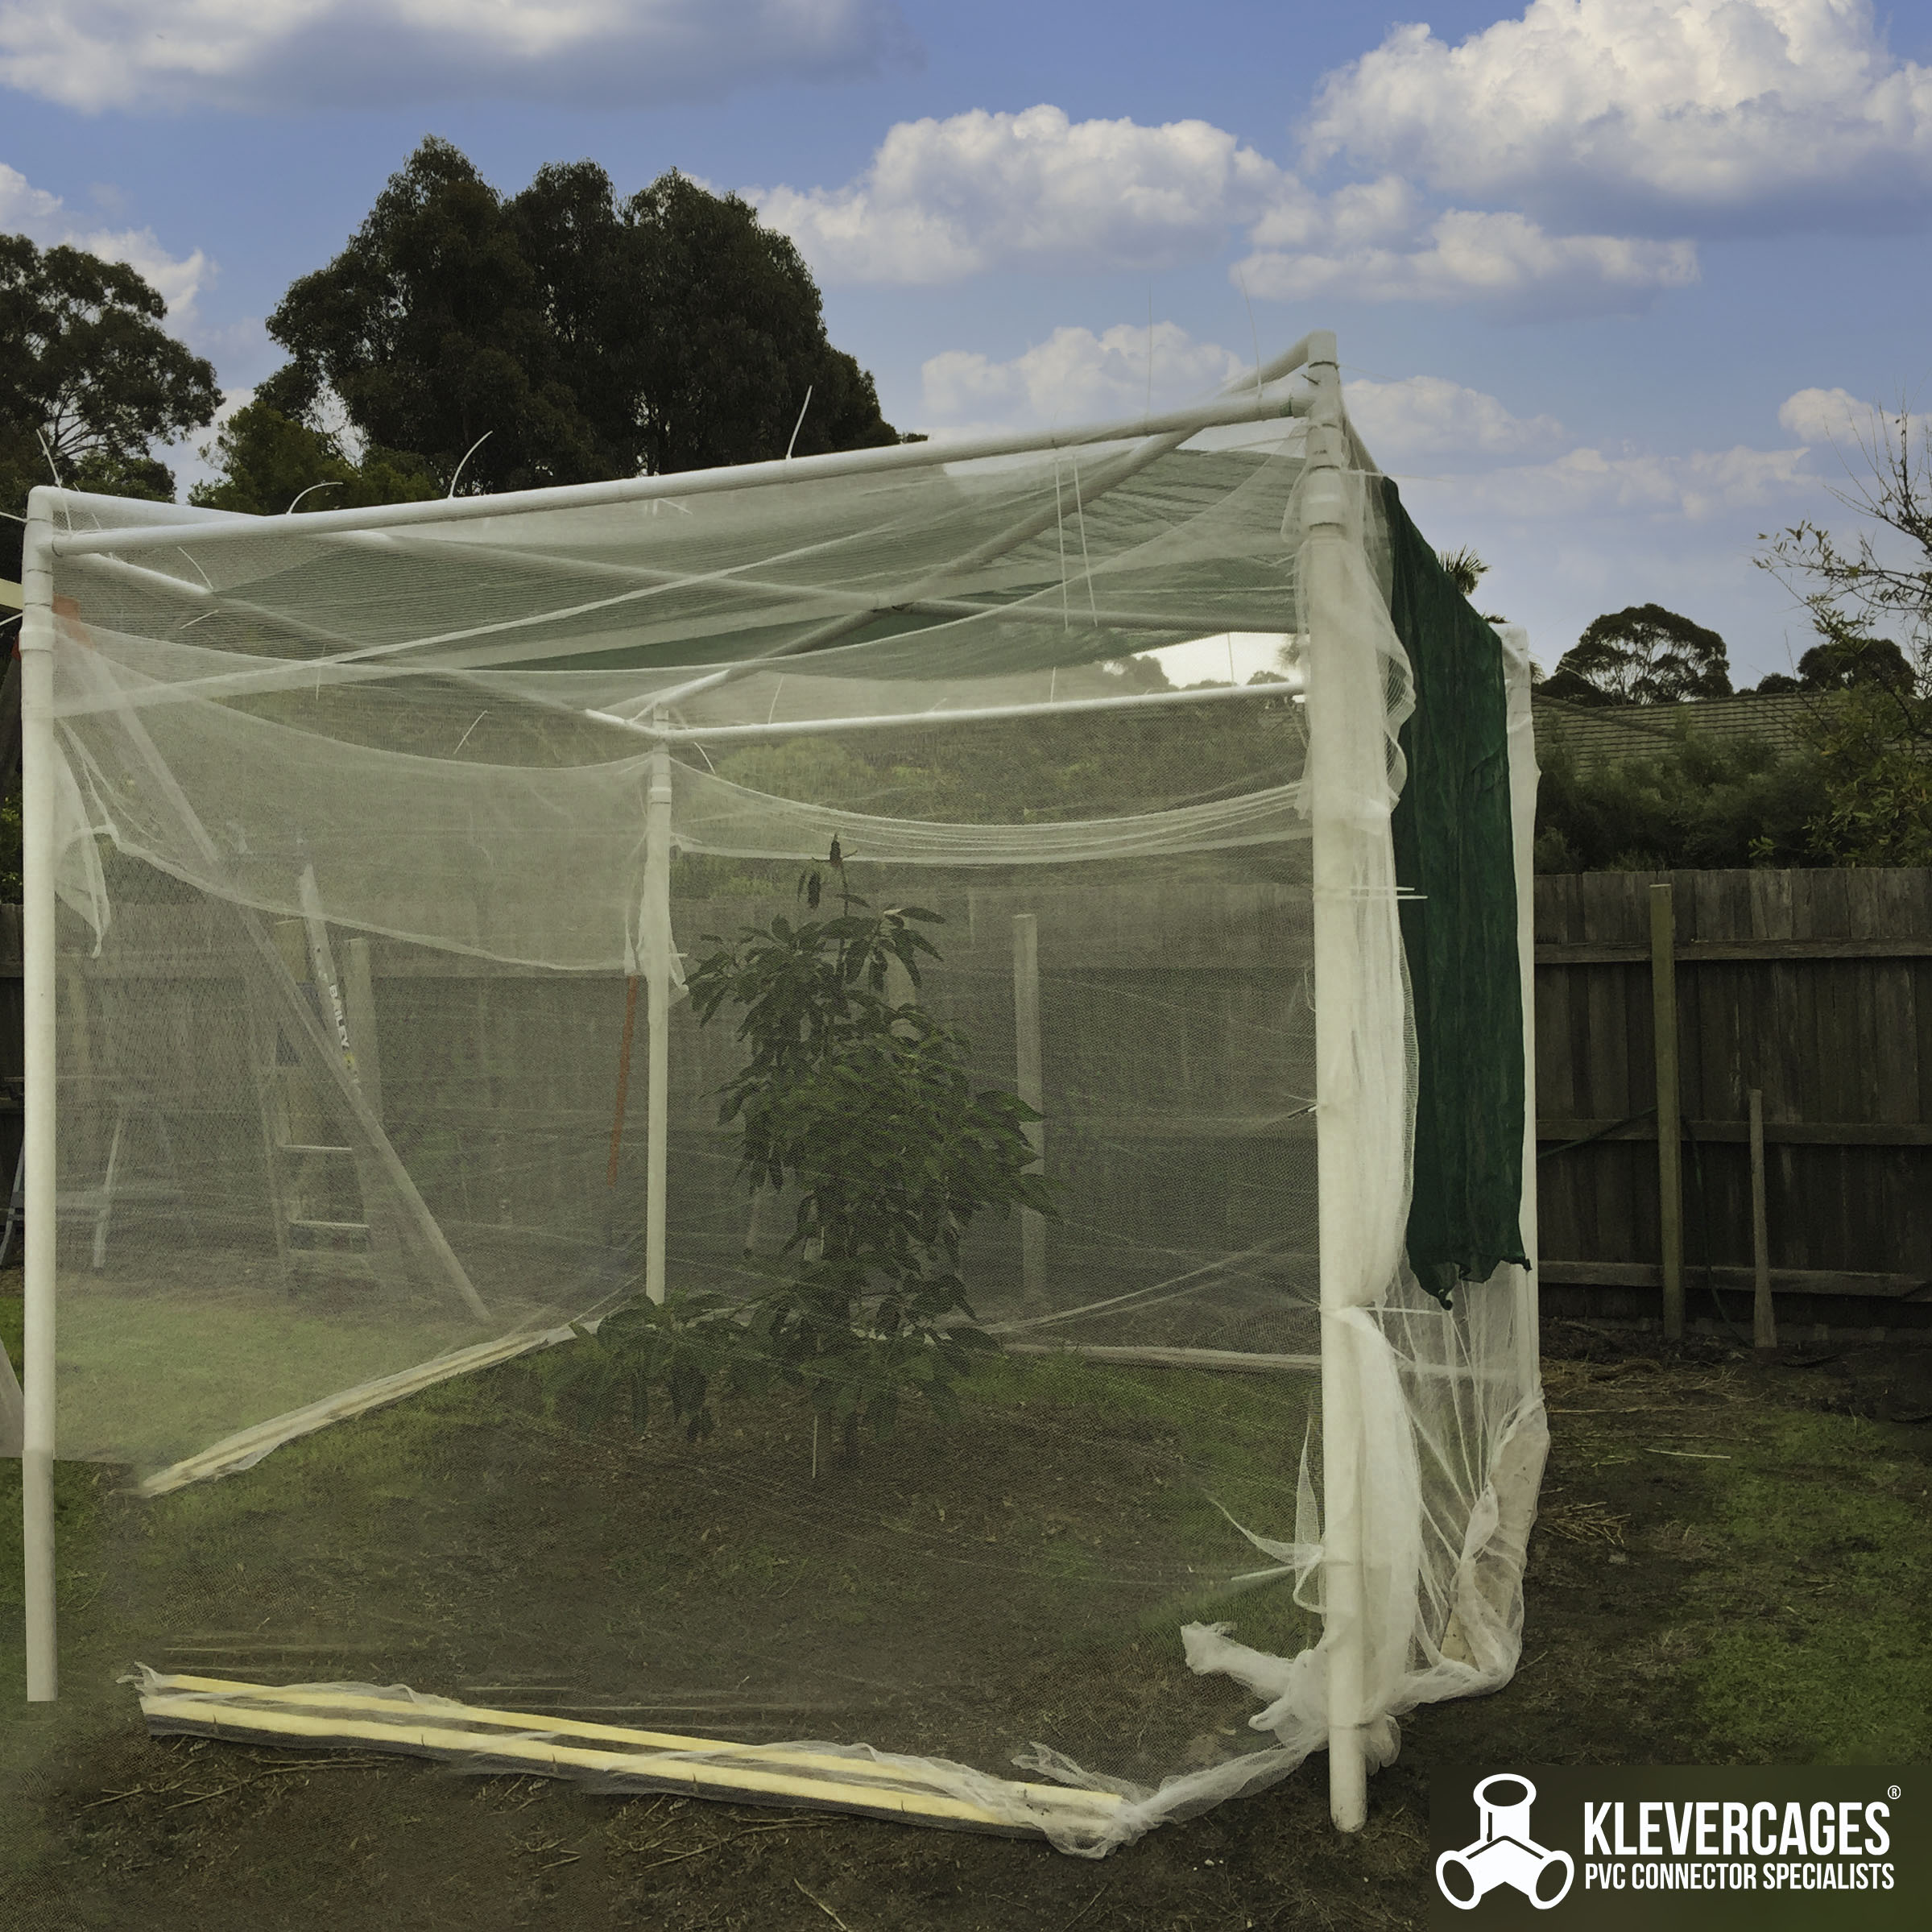 Fruit tree netting on a PVC pipe frame attached with zip ties protecting an Avocado tree from possums